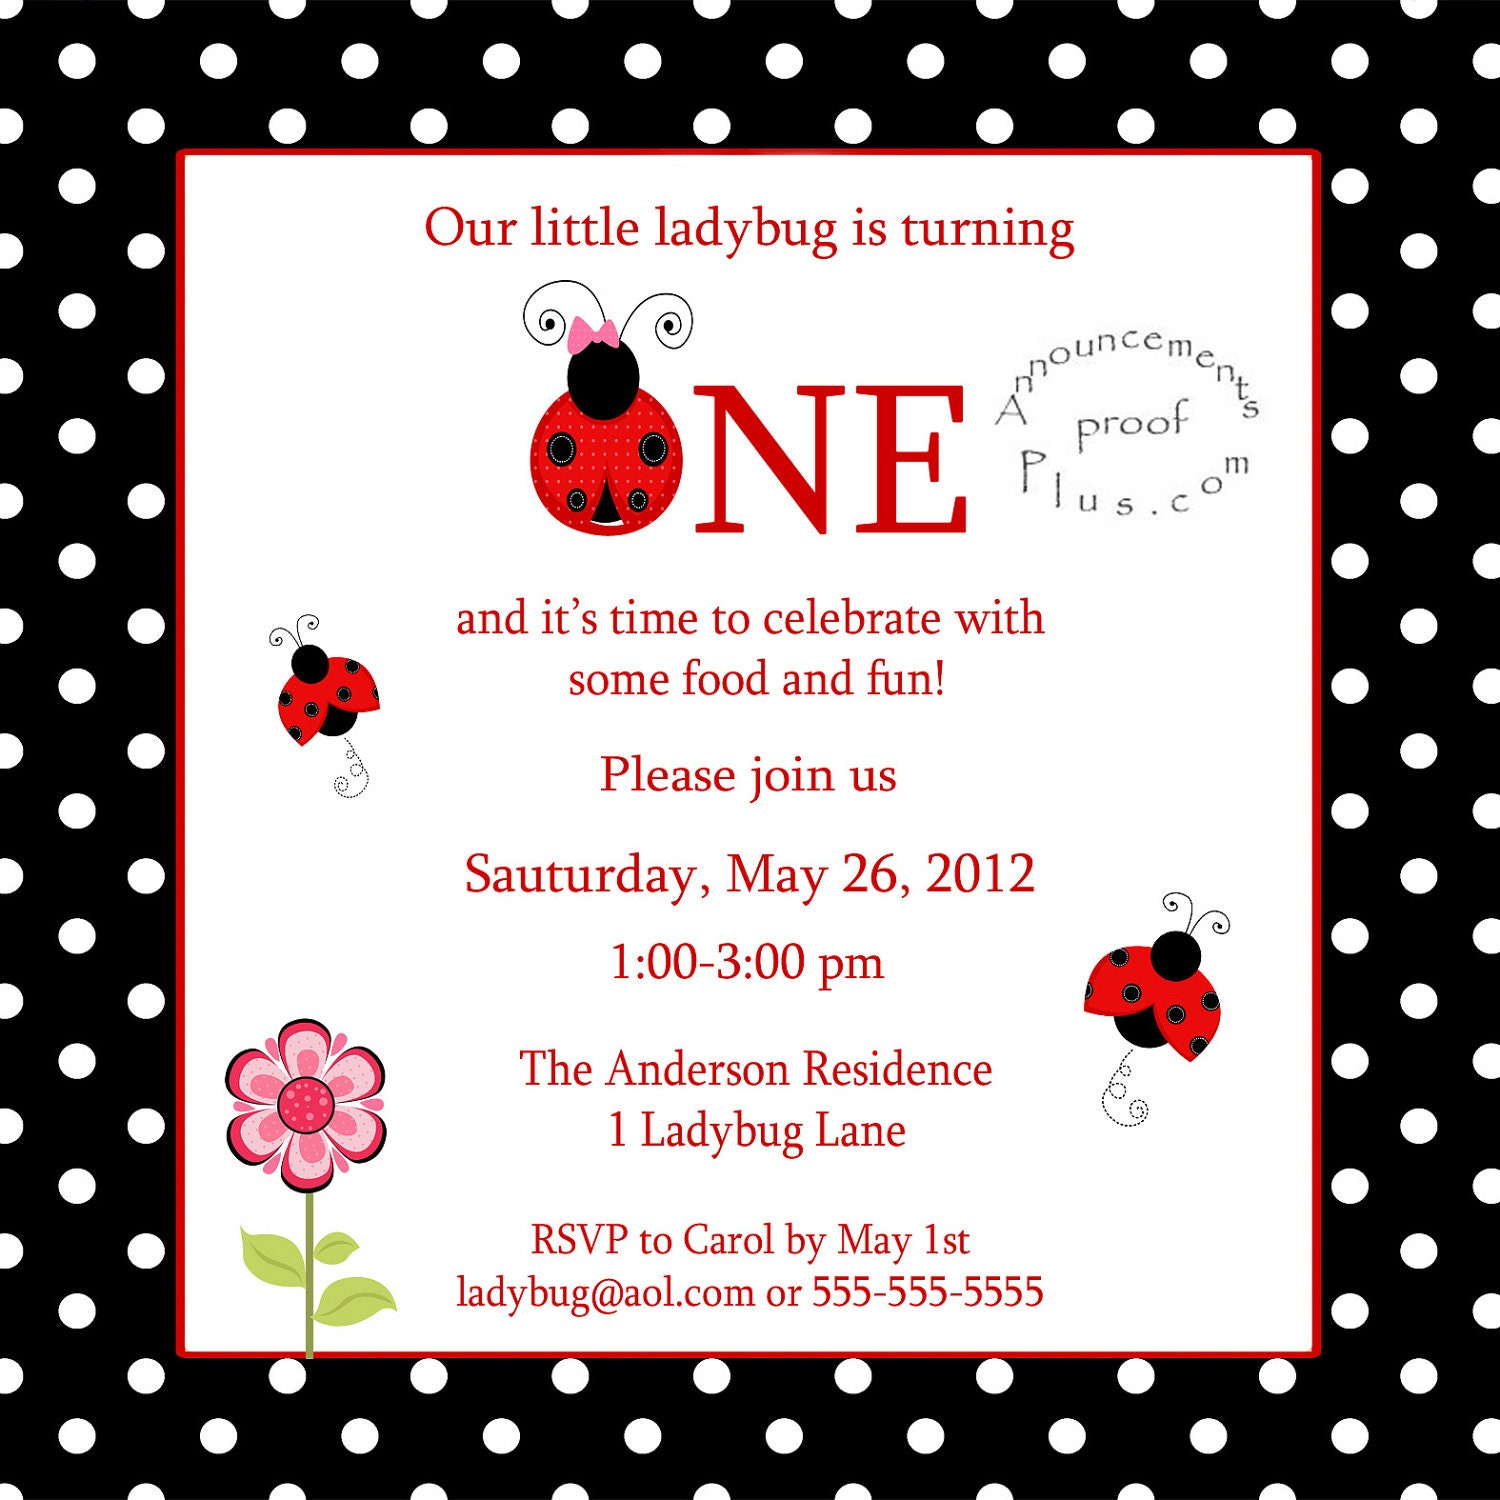 Ladybug Invitations 1St Birthday for great invitations example